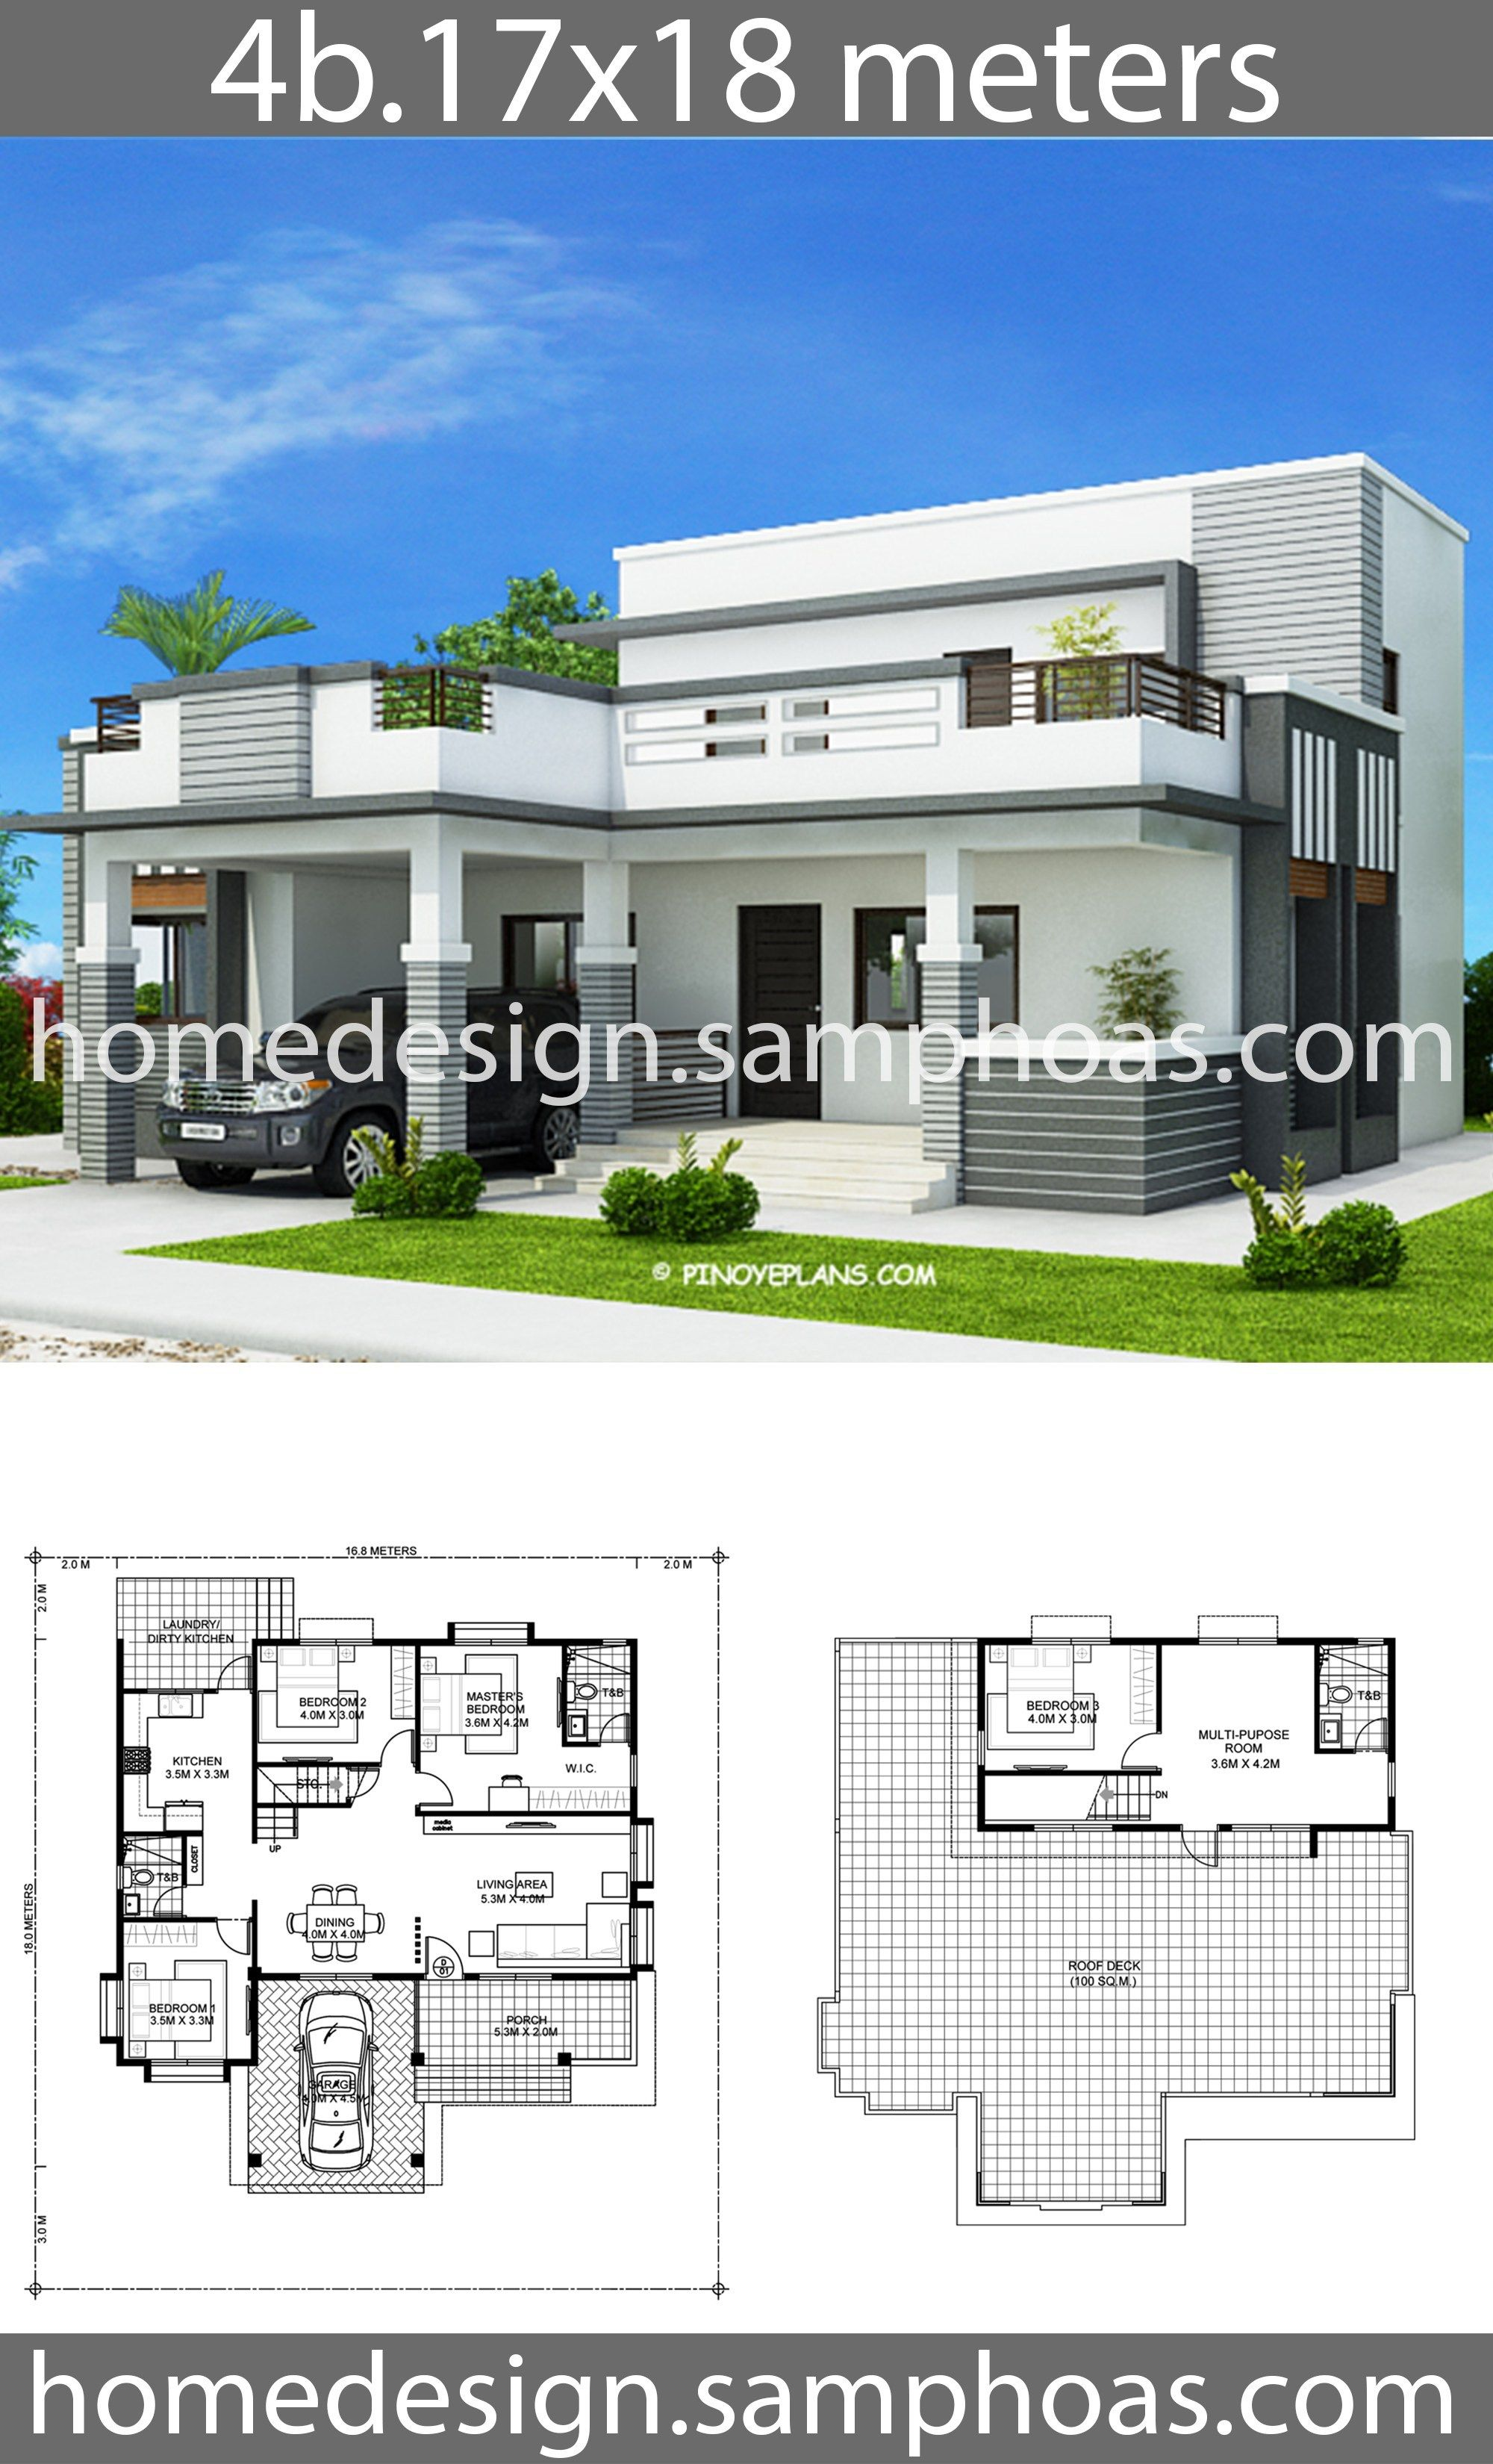 House Plans 17x18m With 4 Bedroom Style Modern Terrace Slaphouse Description Ground Level 3 Bed House Outside Design House Front Design Beautiful House Plans